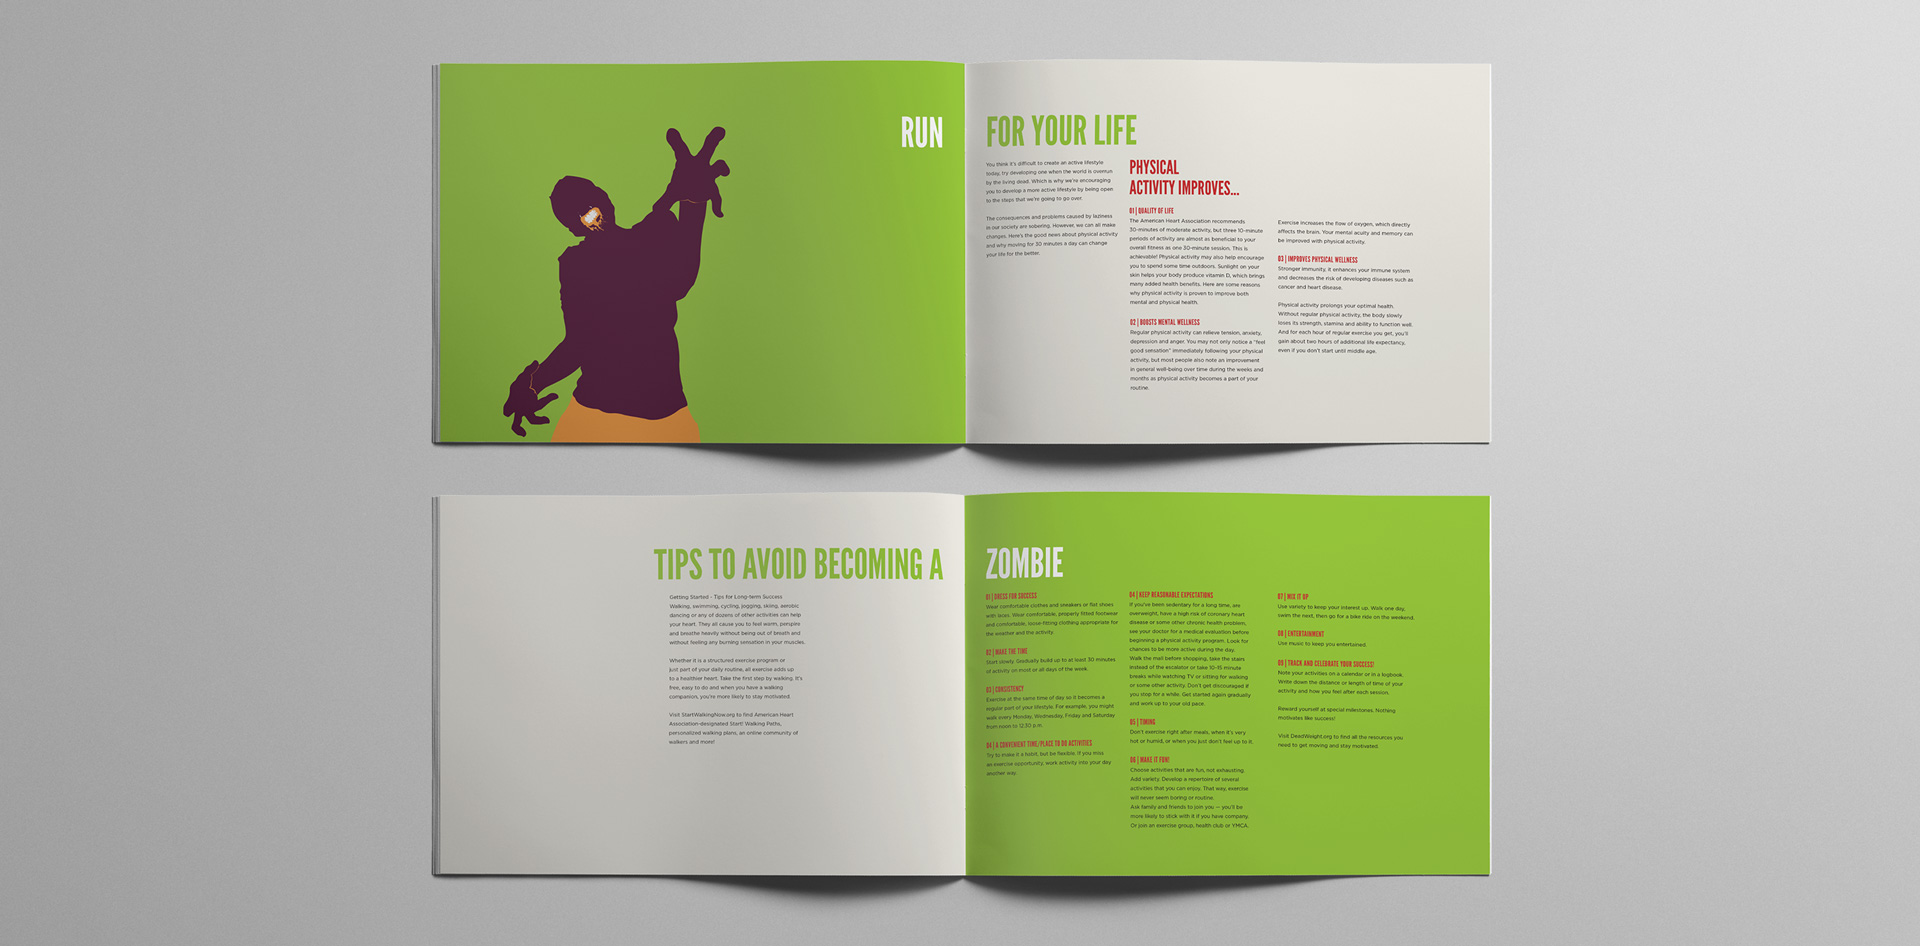 deadweight-awareness-campaign-brochure-05.jpg